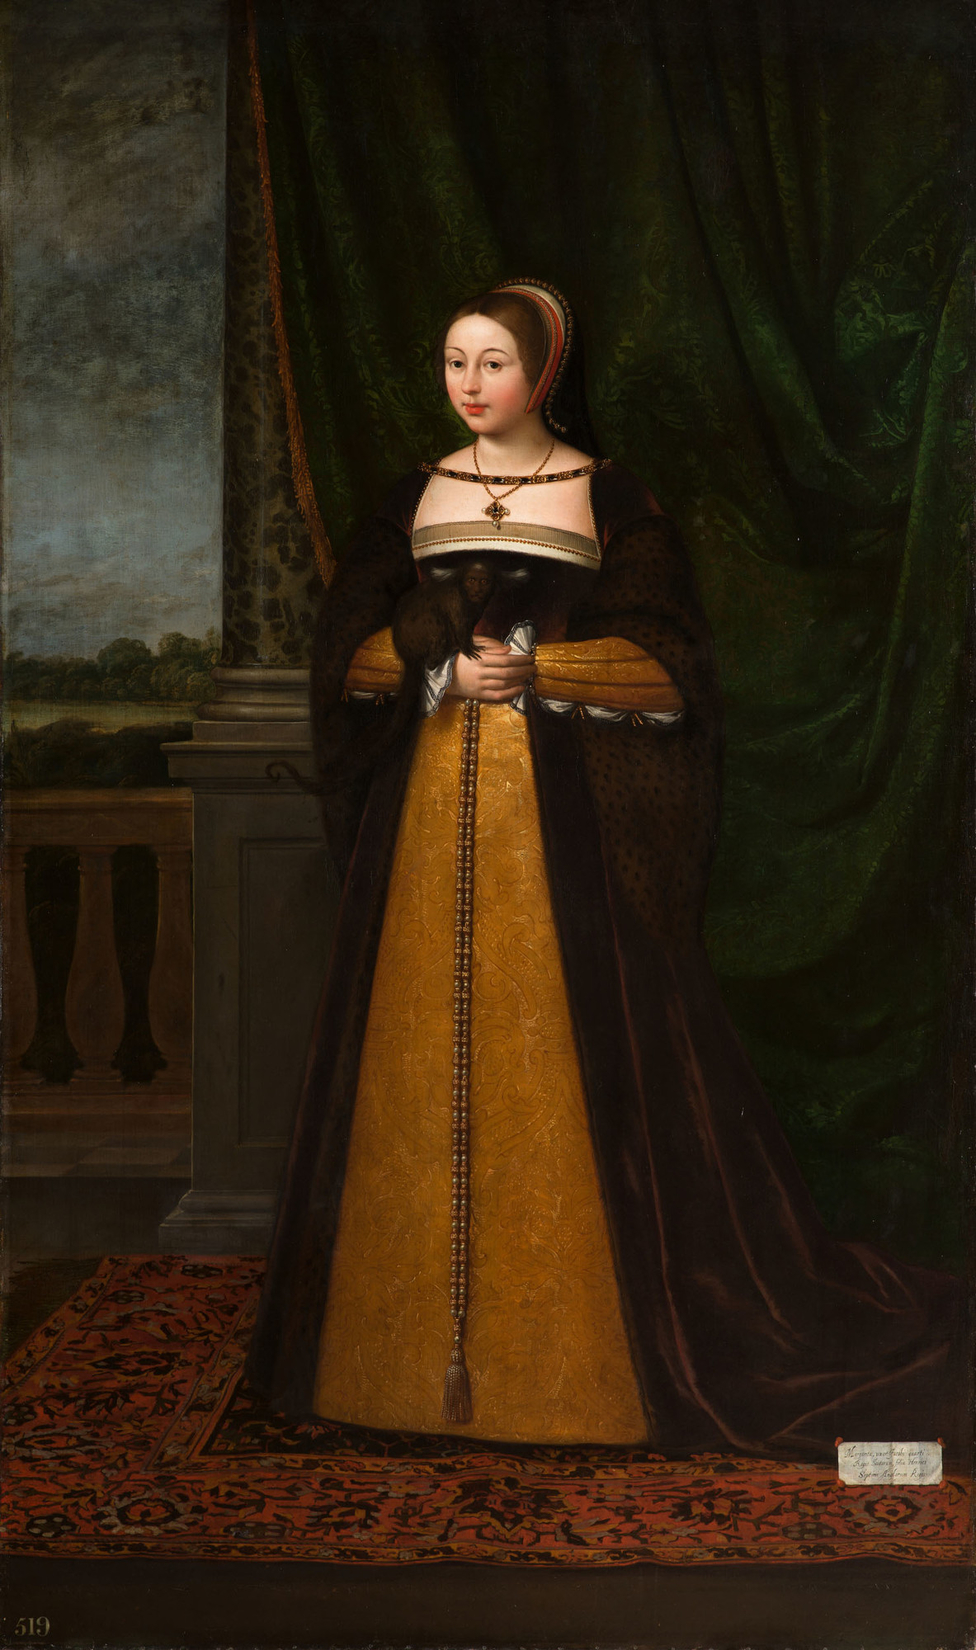 Daniel_Mytens_(c._1590-1647)_-_Margaret_Tudor,_Queen_of_Scotland_(1489-1541)_-_RCIN_401181_-_Royal_Collection.jpg (976×1650)